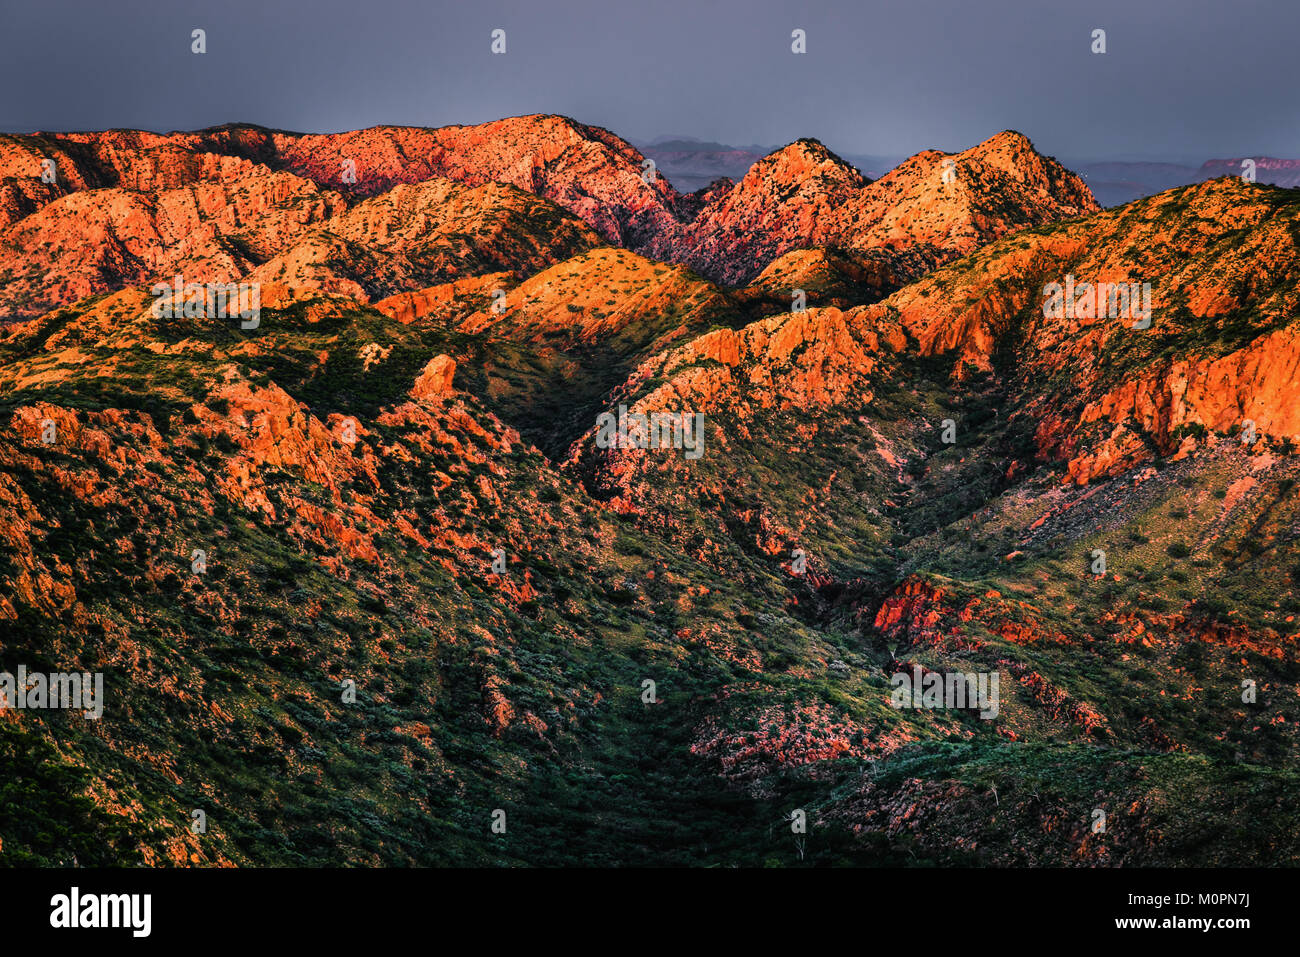 Sunset Light at Brinkley Bluff. West Macdonnell Ranges, Northern Territory - Stock Image